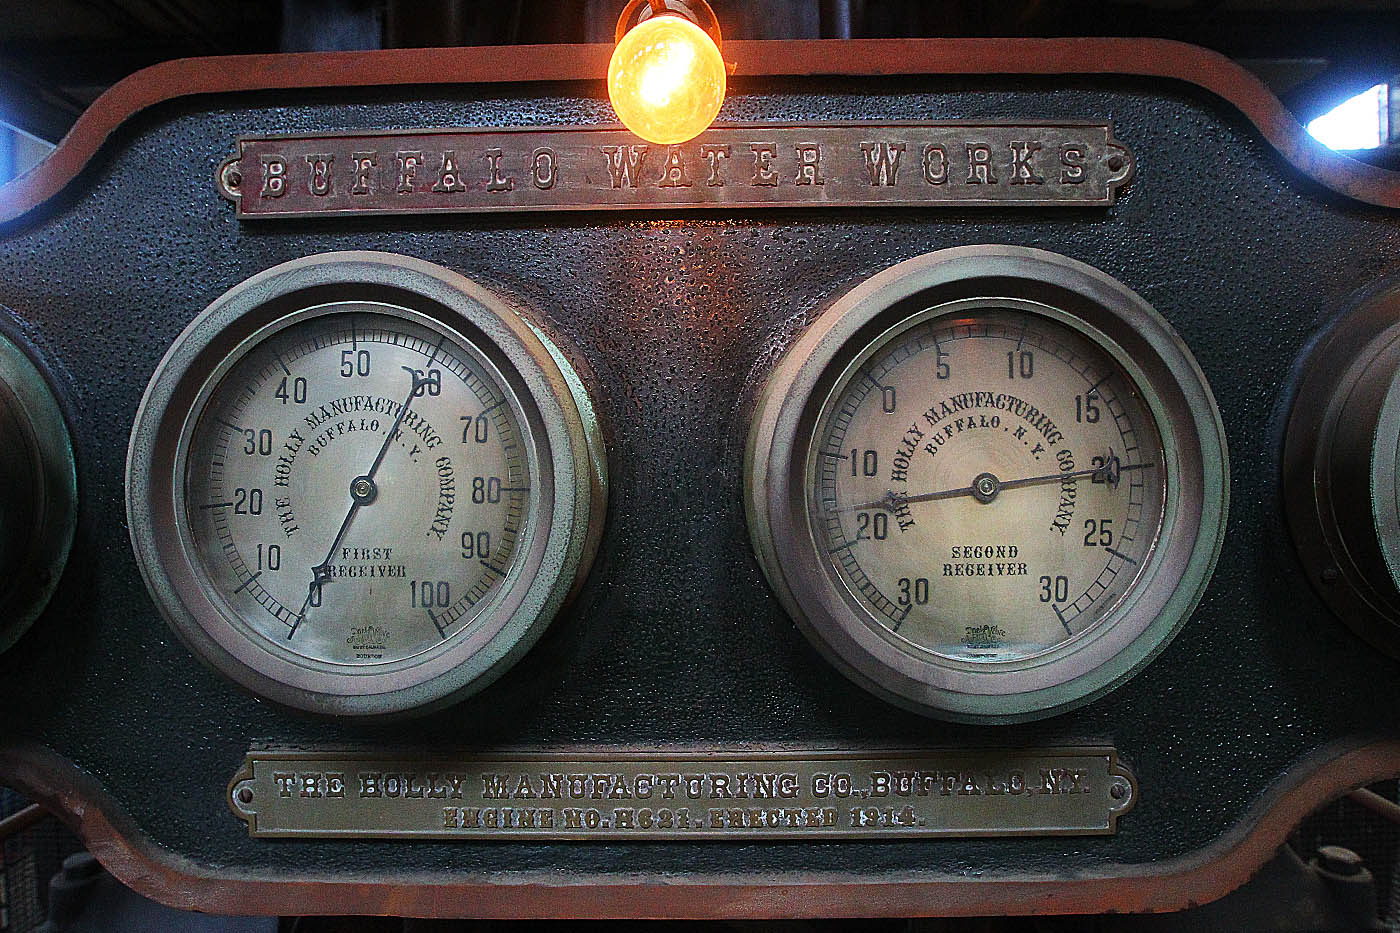 Gauges on the Holly Steam Pumps at the Col. Francis G. Ward Pumping Station on Porter Ave, in Buffalo, N.Y. , on Saturday Sept. 17, 2016, highlighted. Built by the Holly Manufacturing Co., Buffalo N.Y. in 1914, still complete and intact but taken offline in the late 70's early 80's. The five engines each stand 60 ft. tall and weigh in at 1100 tons apiece and capable of pumping up to 30,000,000 million gallons per day each. (John Hickey/Buffalo News)